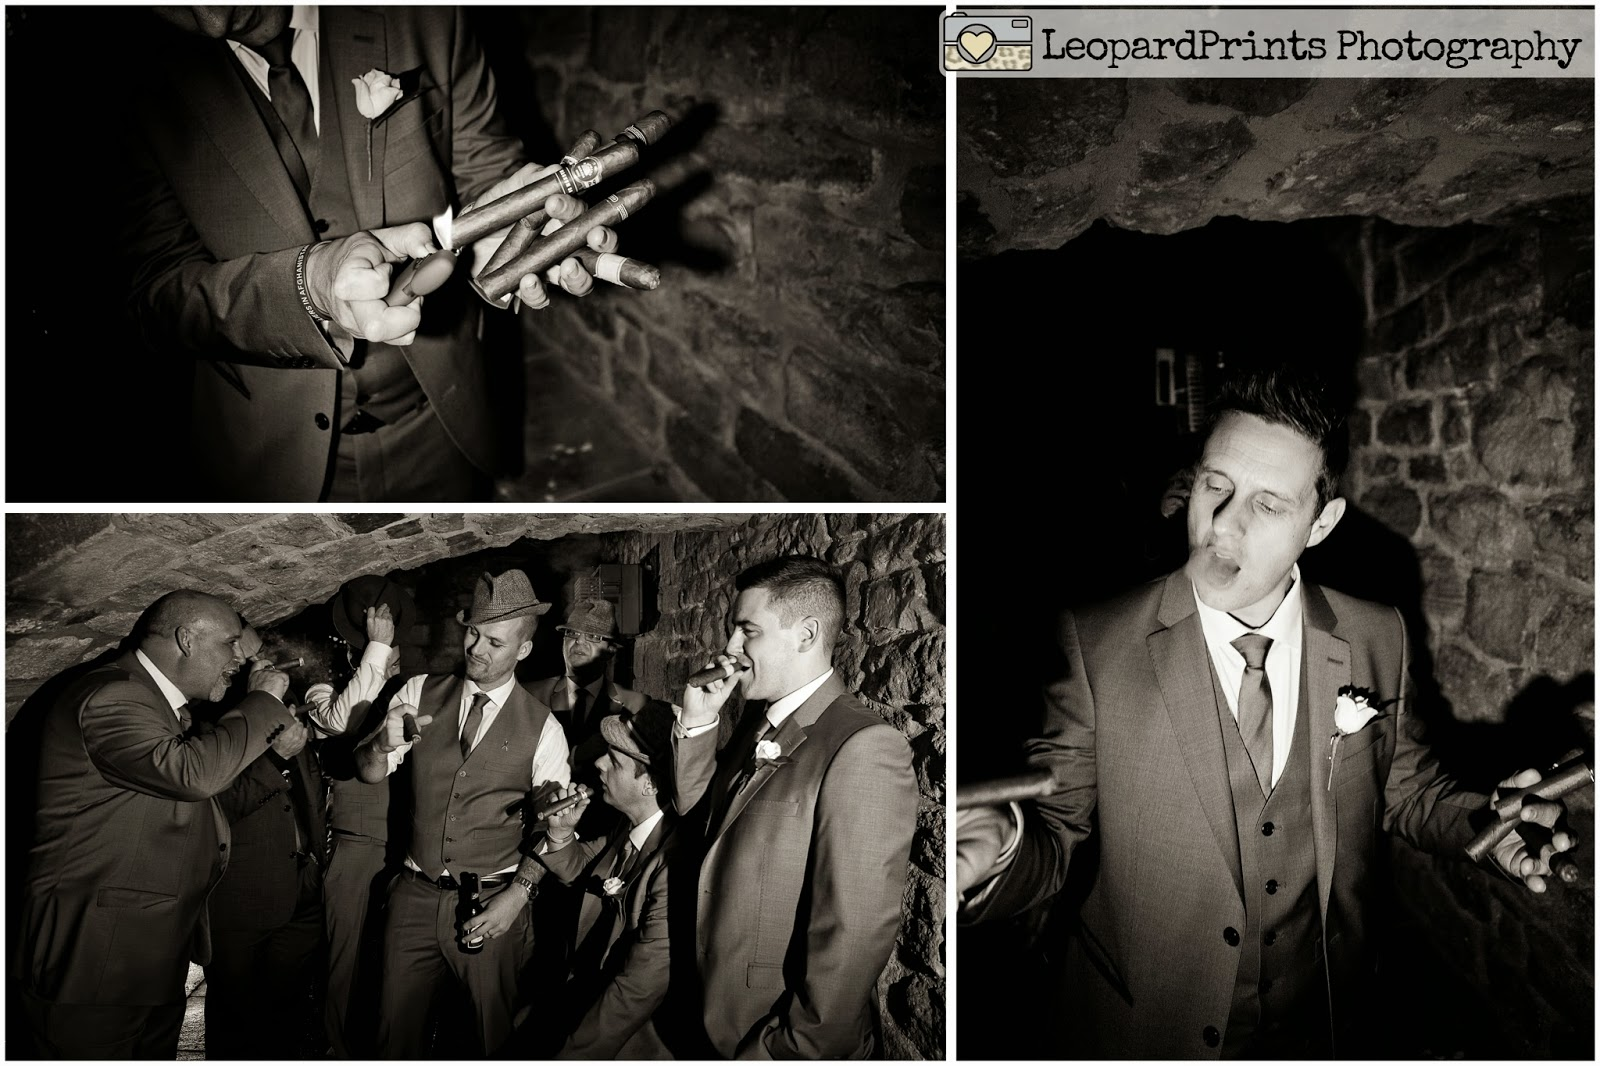 cool wedding shots of the groomsmen with cigars and hats